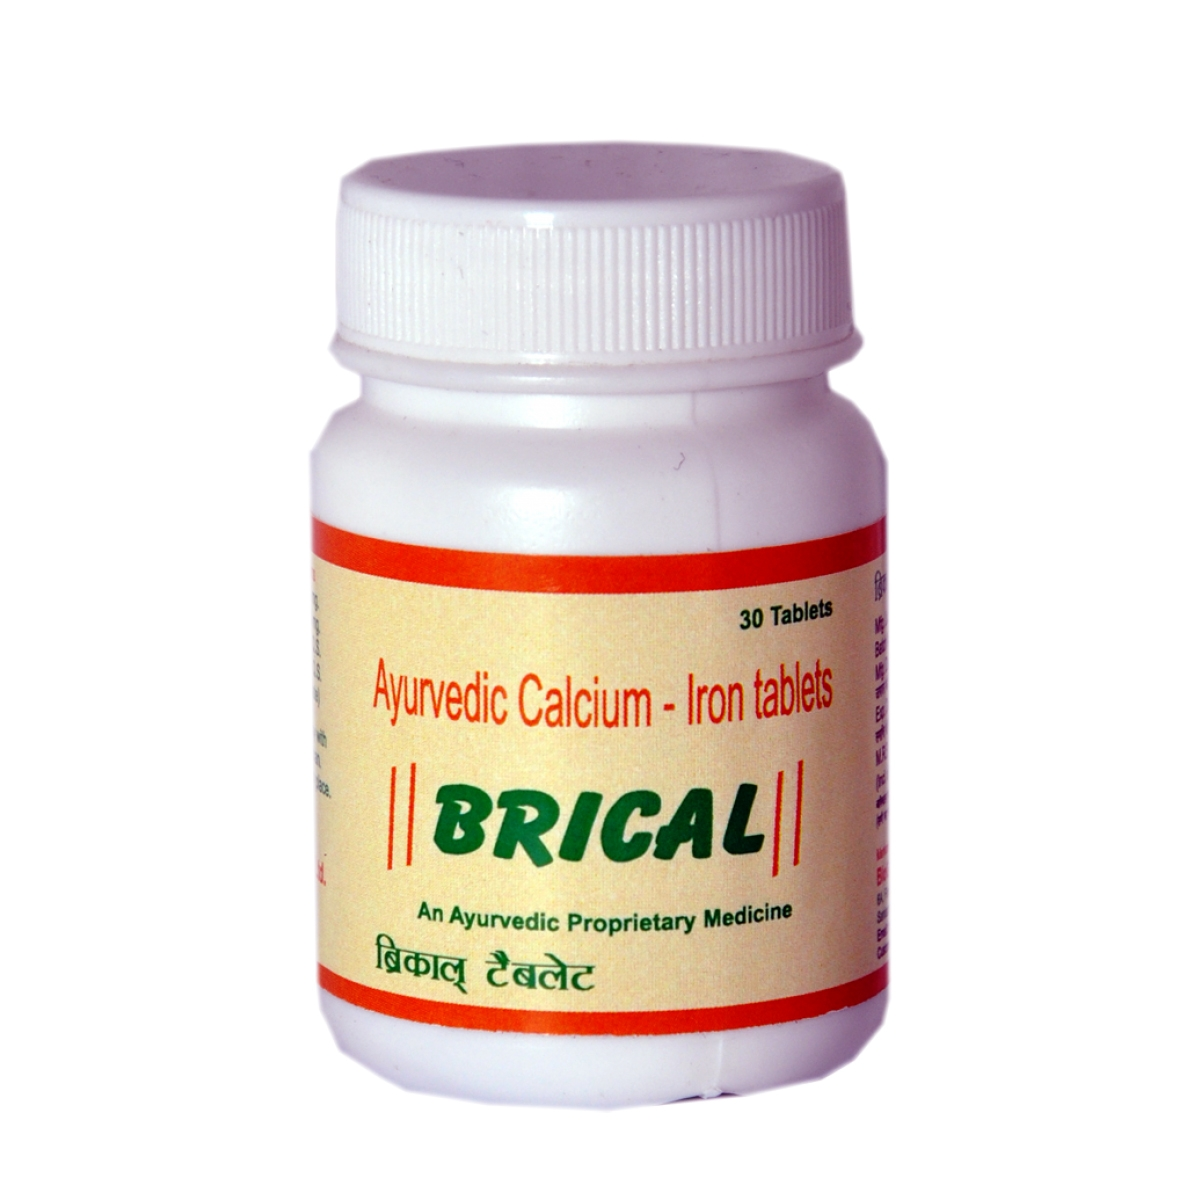 Brical Tablets In Raigarh